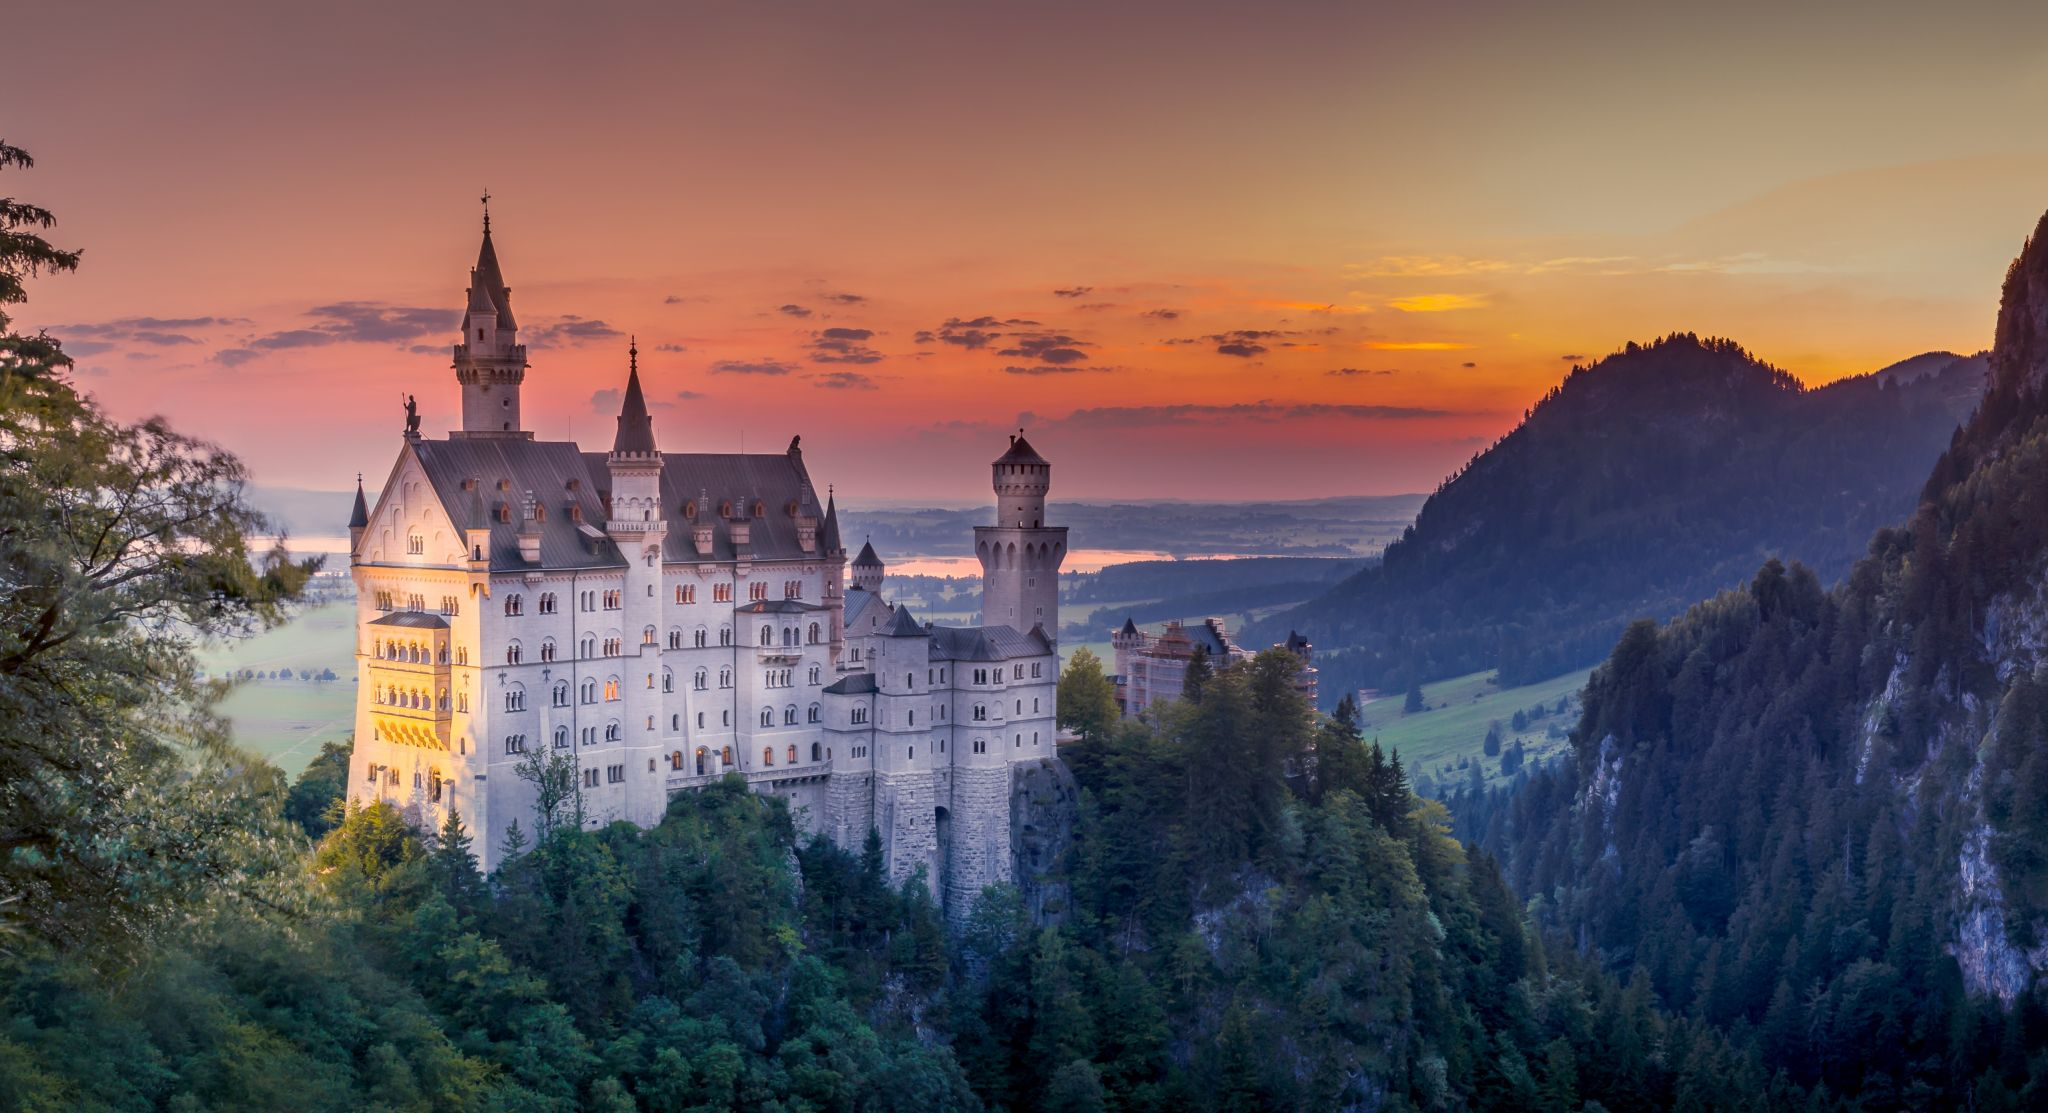 The hidden Neuschwanstein spot, Germany